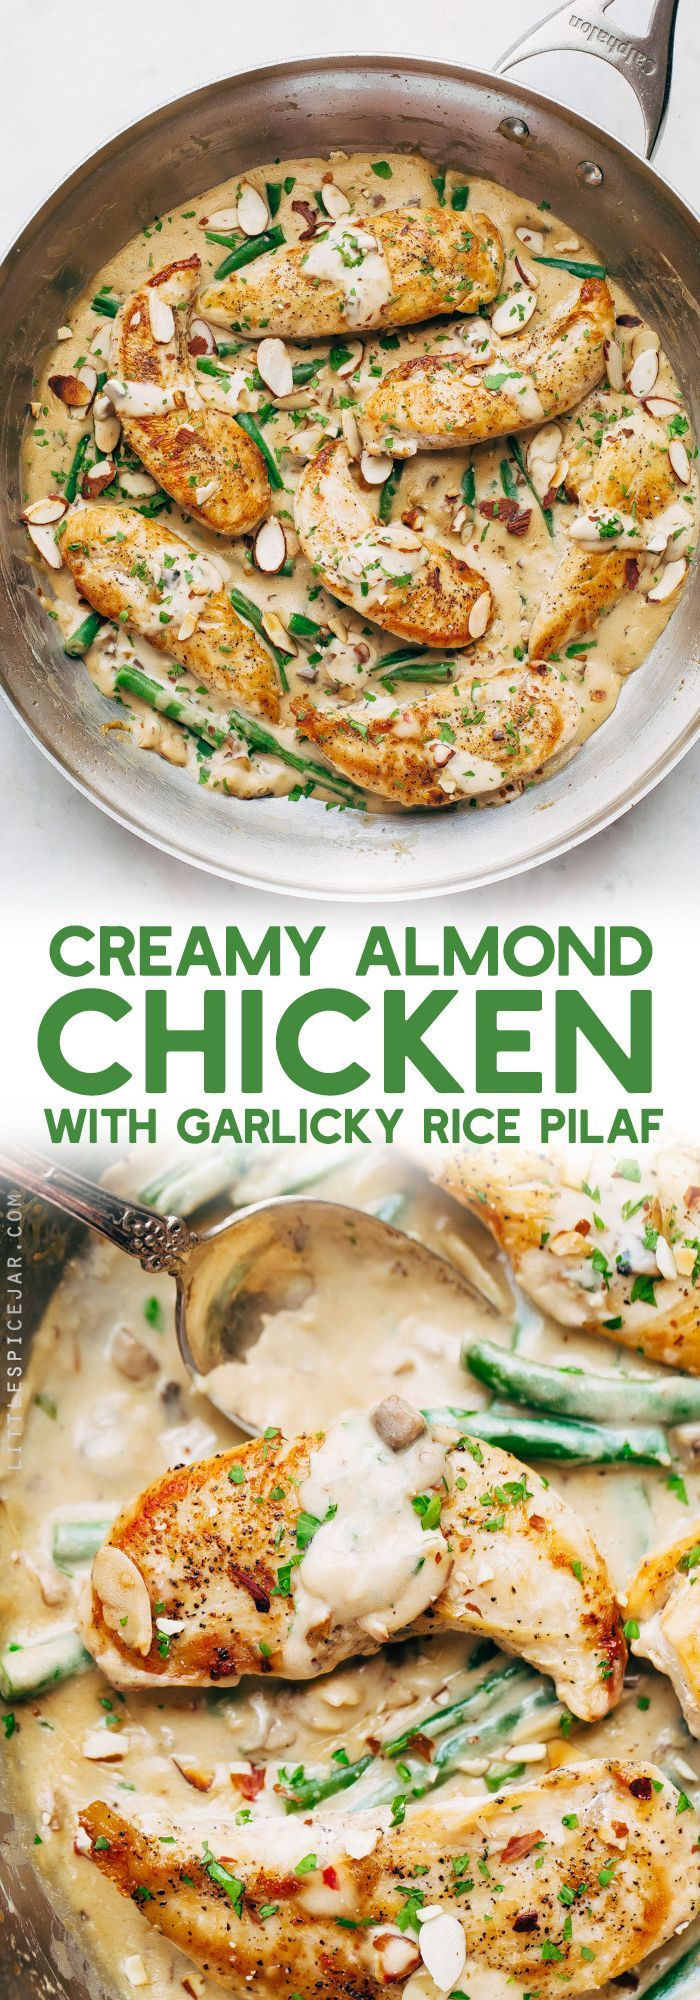 Creamy Almond Chicken with Rice Pilaf - seared chicken tenders in homemade cream sauce, sooo good!